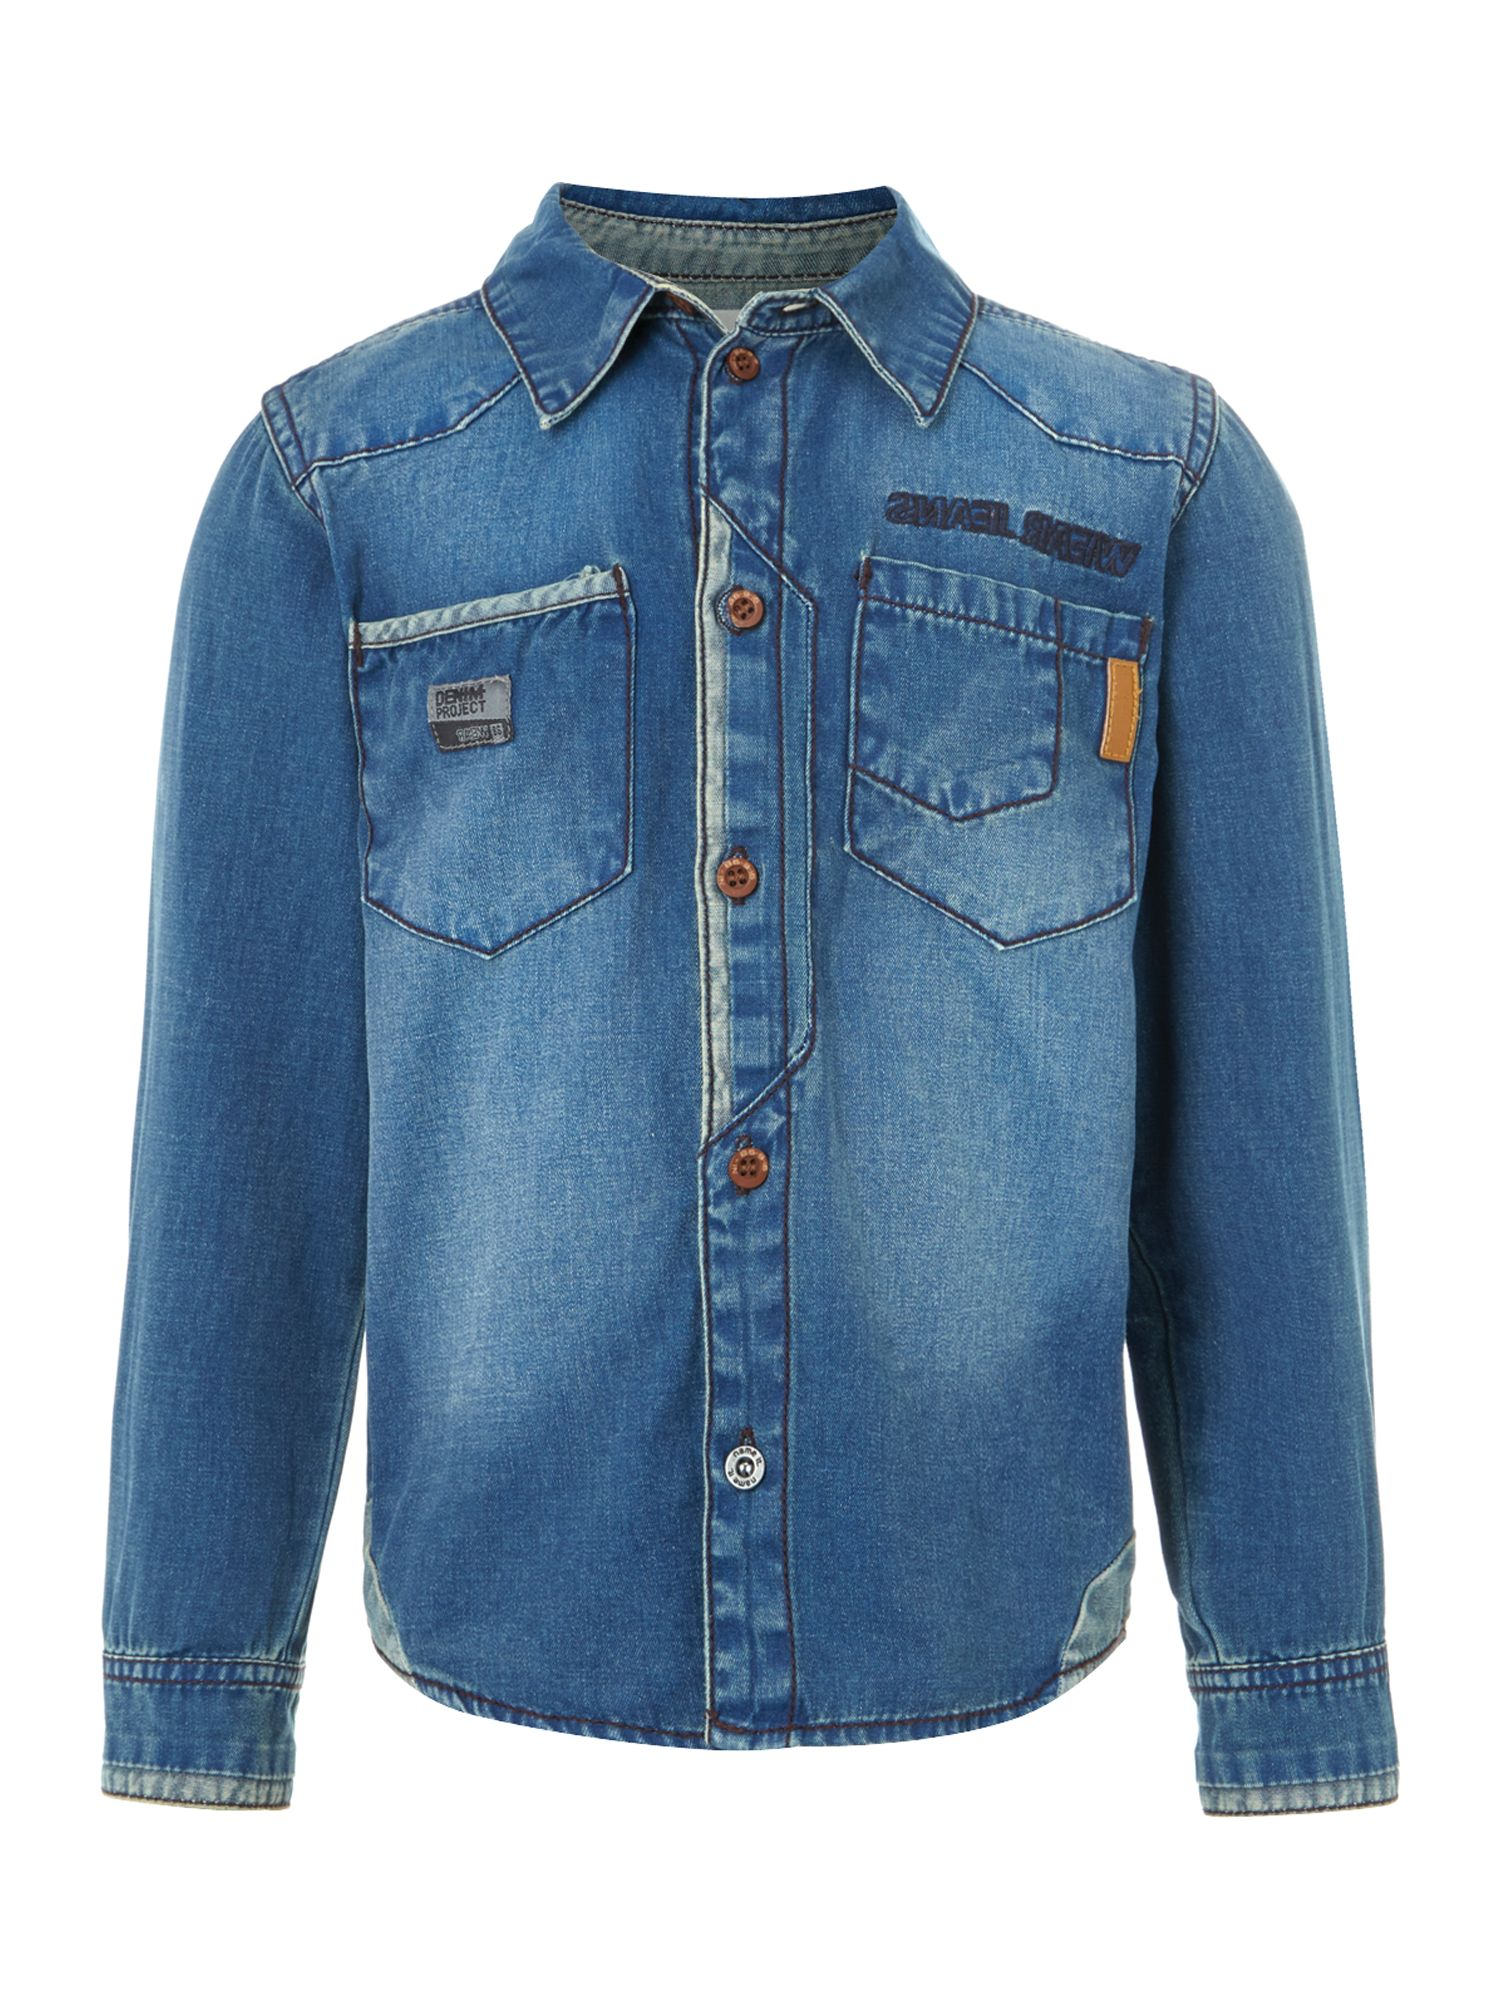 Boys contrast patch denim shirt